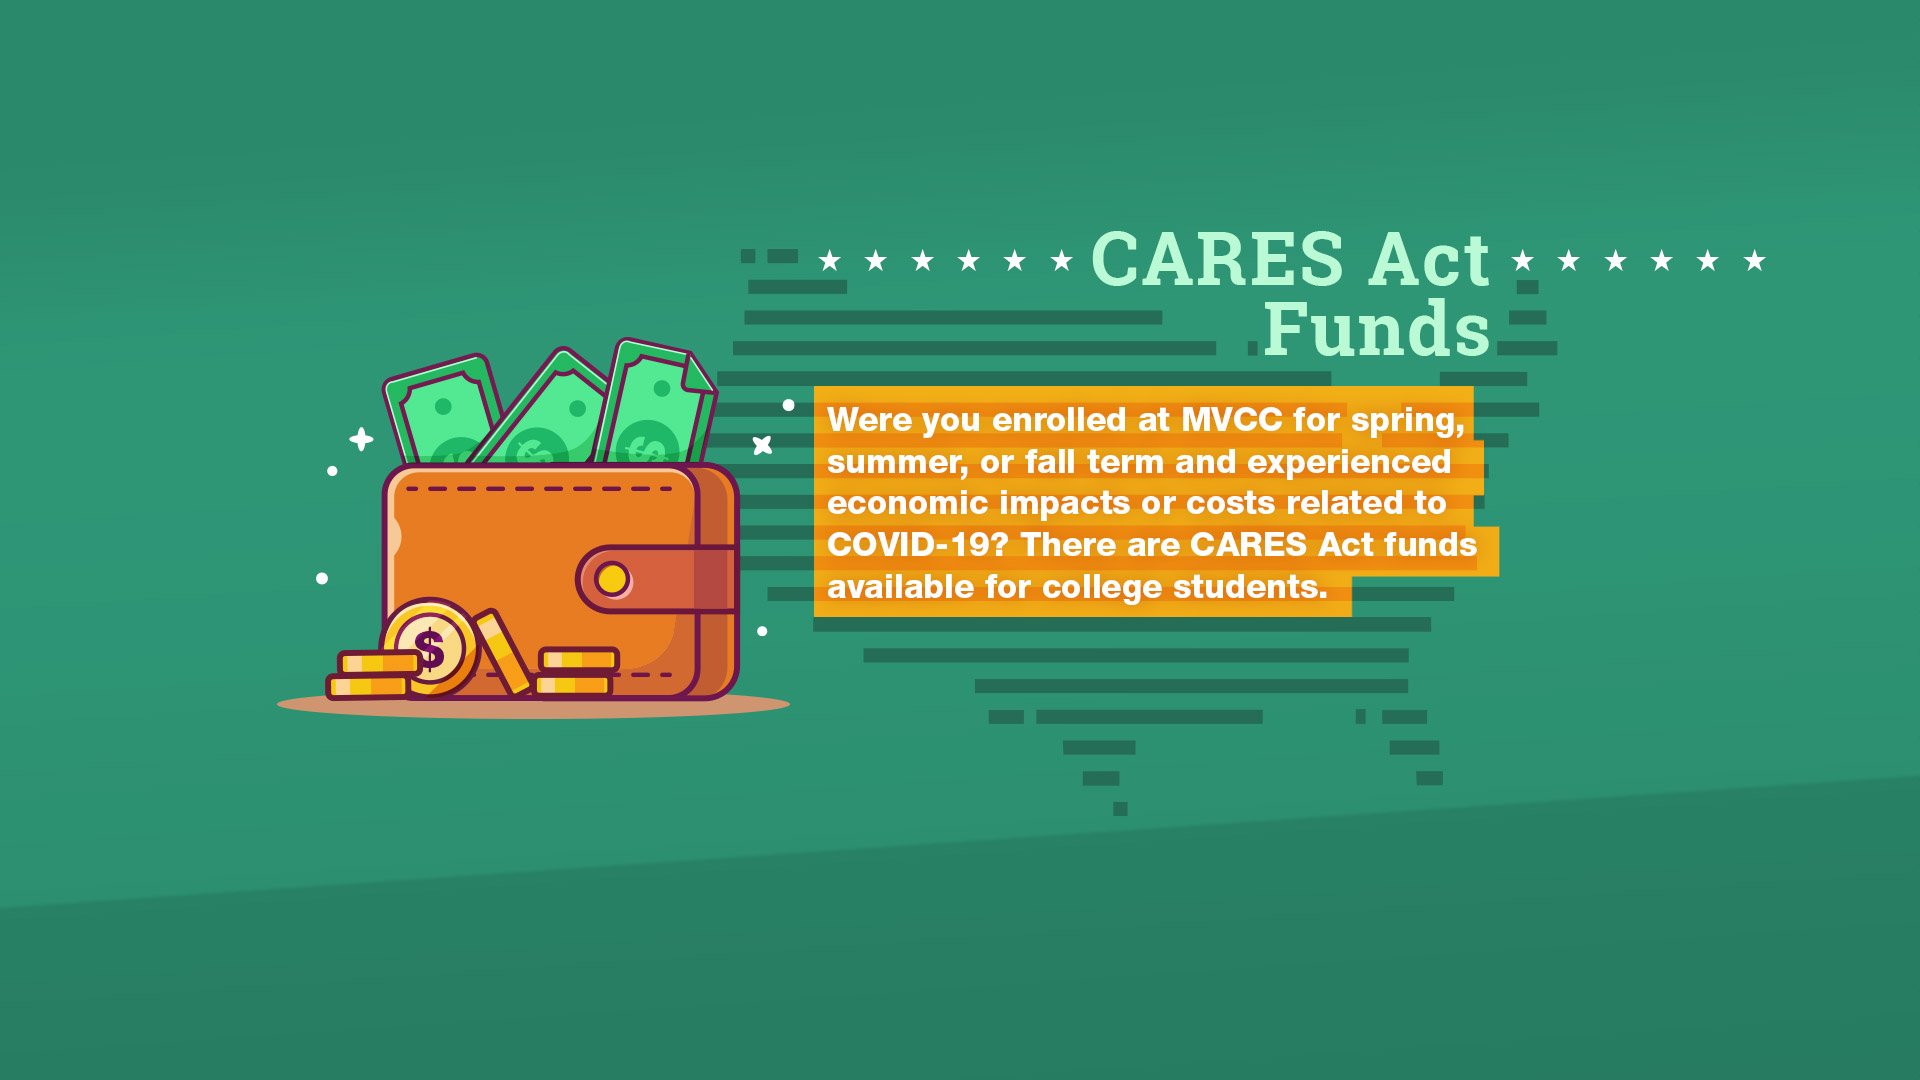 Were you enrolled at MVCC for spring or summer and experienced financial difficulty due to COVID-19? You may be eligible for CARES Act emergency funds.